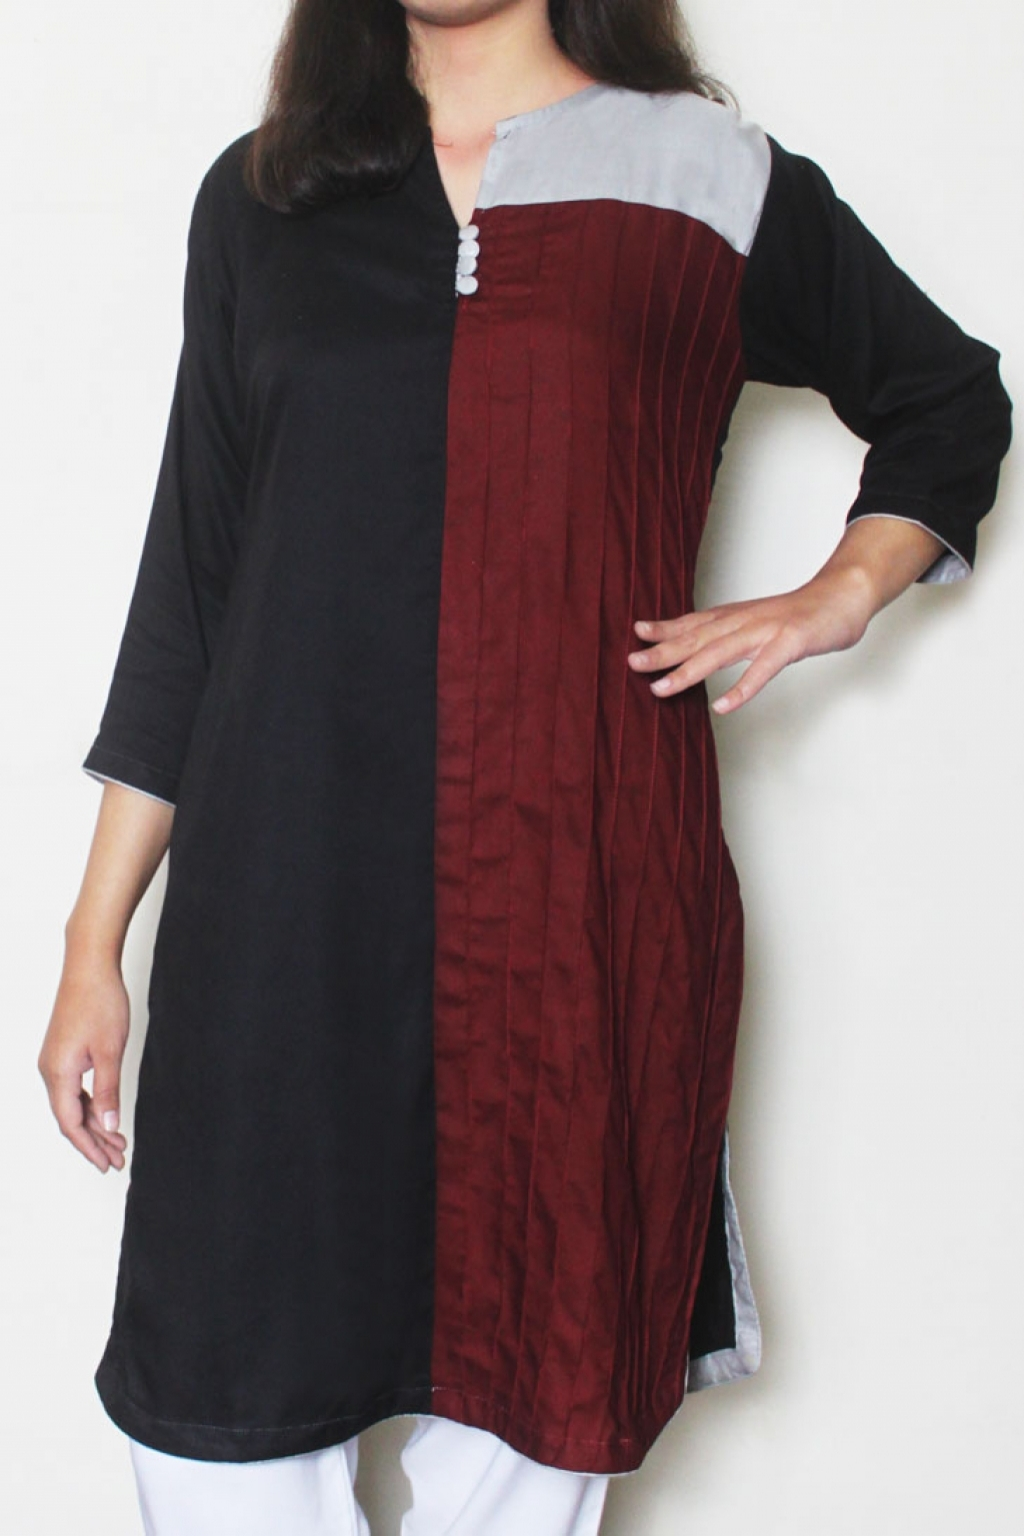 15006486500_Affordable_Black_and_red_1.jpg